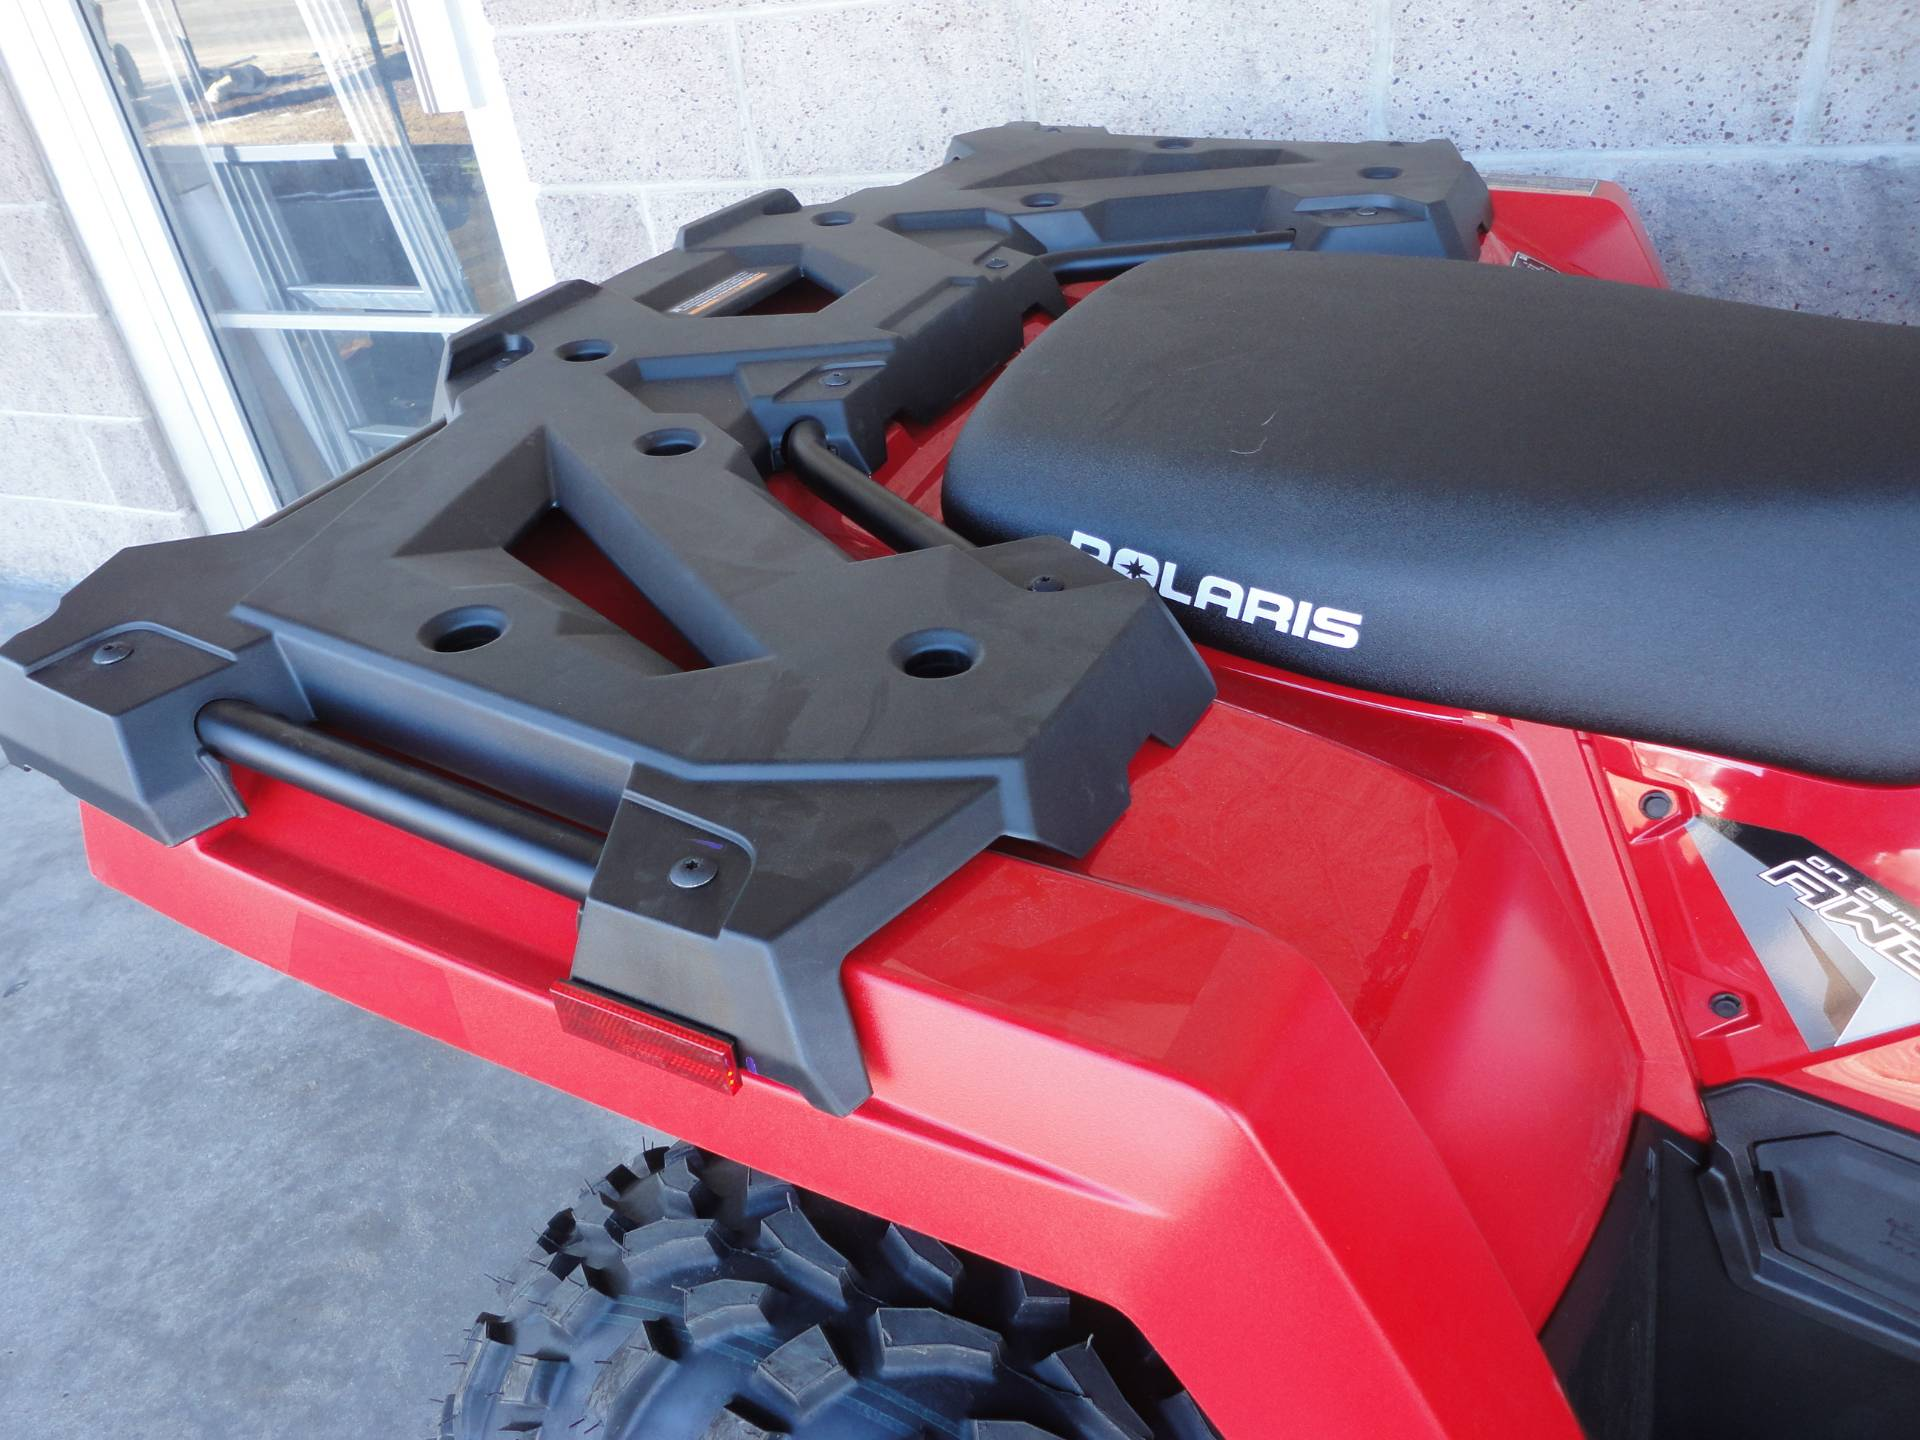 2020 Polaris Sportsman 570 in Denver, Colorado - Photo 14